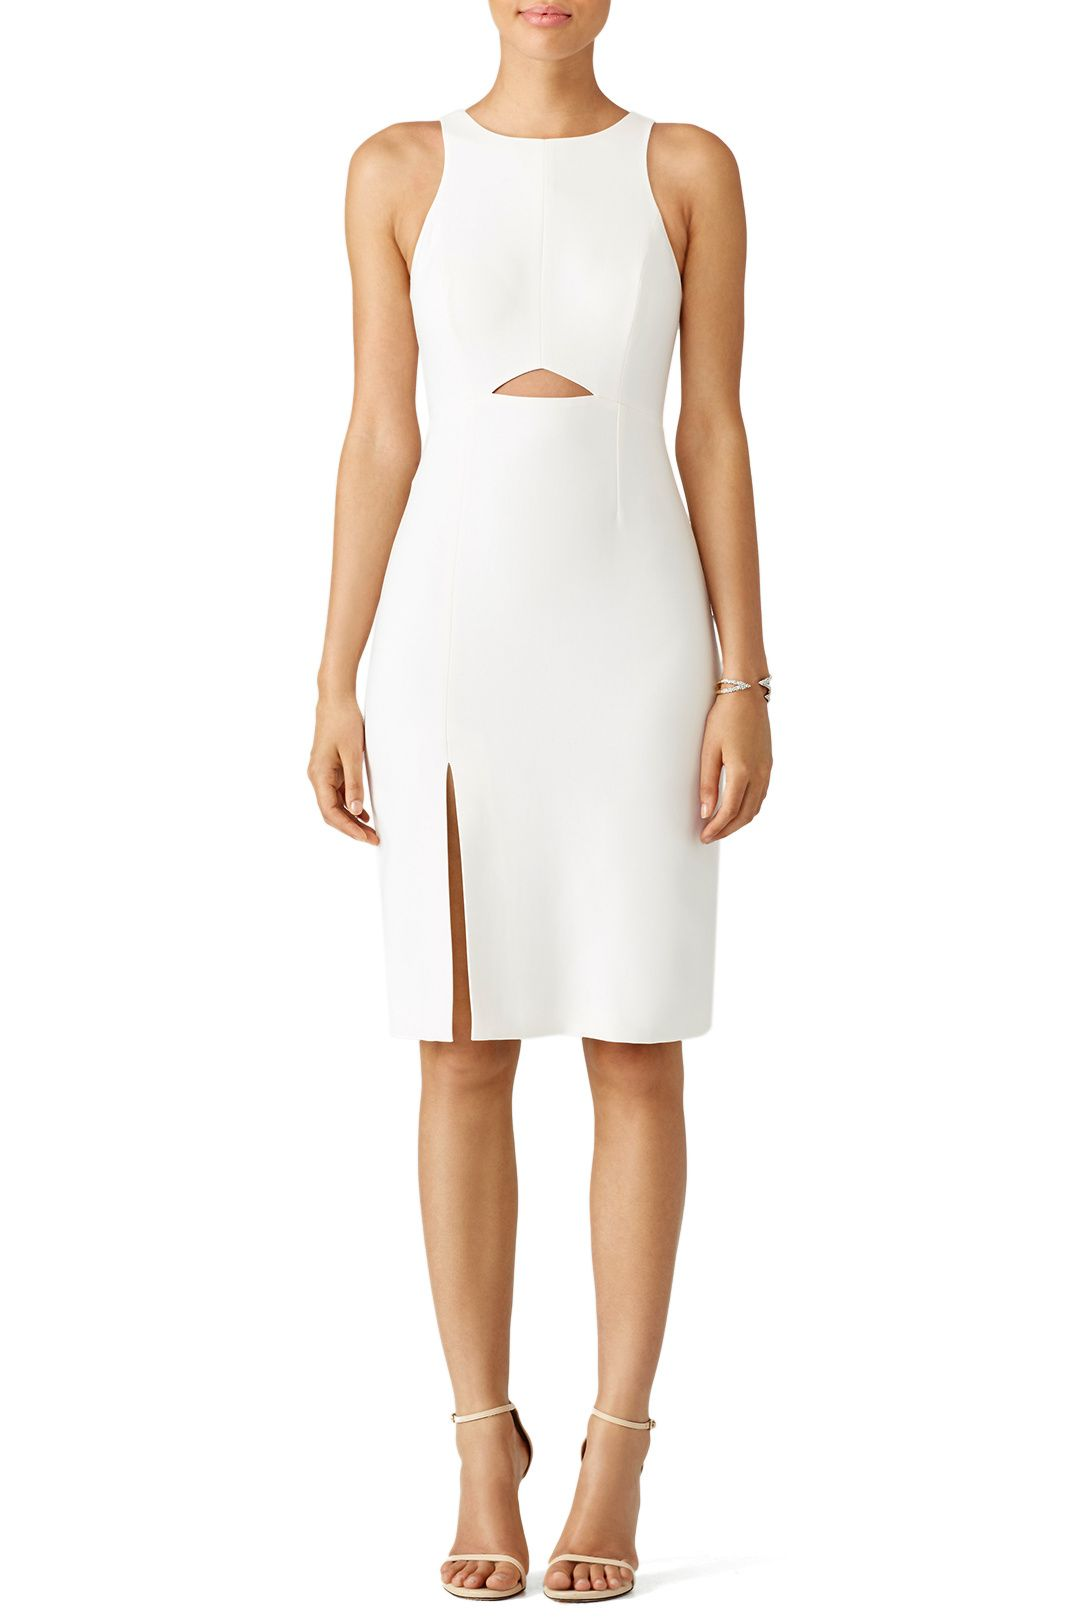 White Cutout Dress  Cerceo Wedding Bridesmaid Look Book  Pinterest